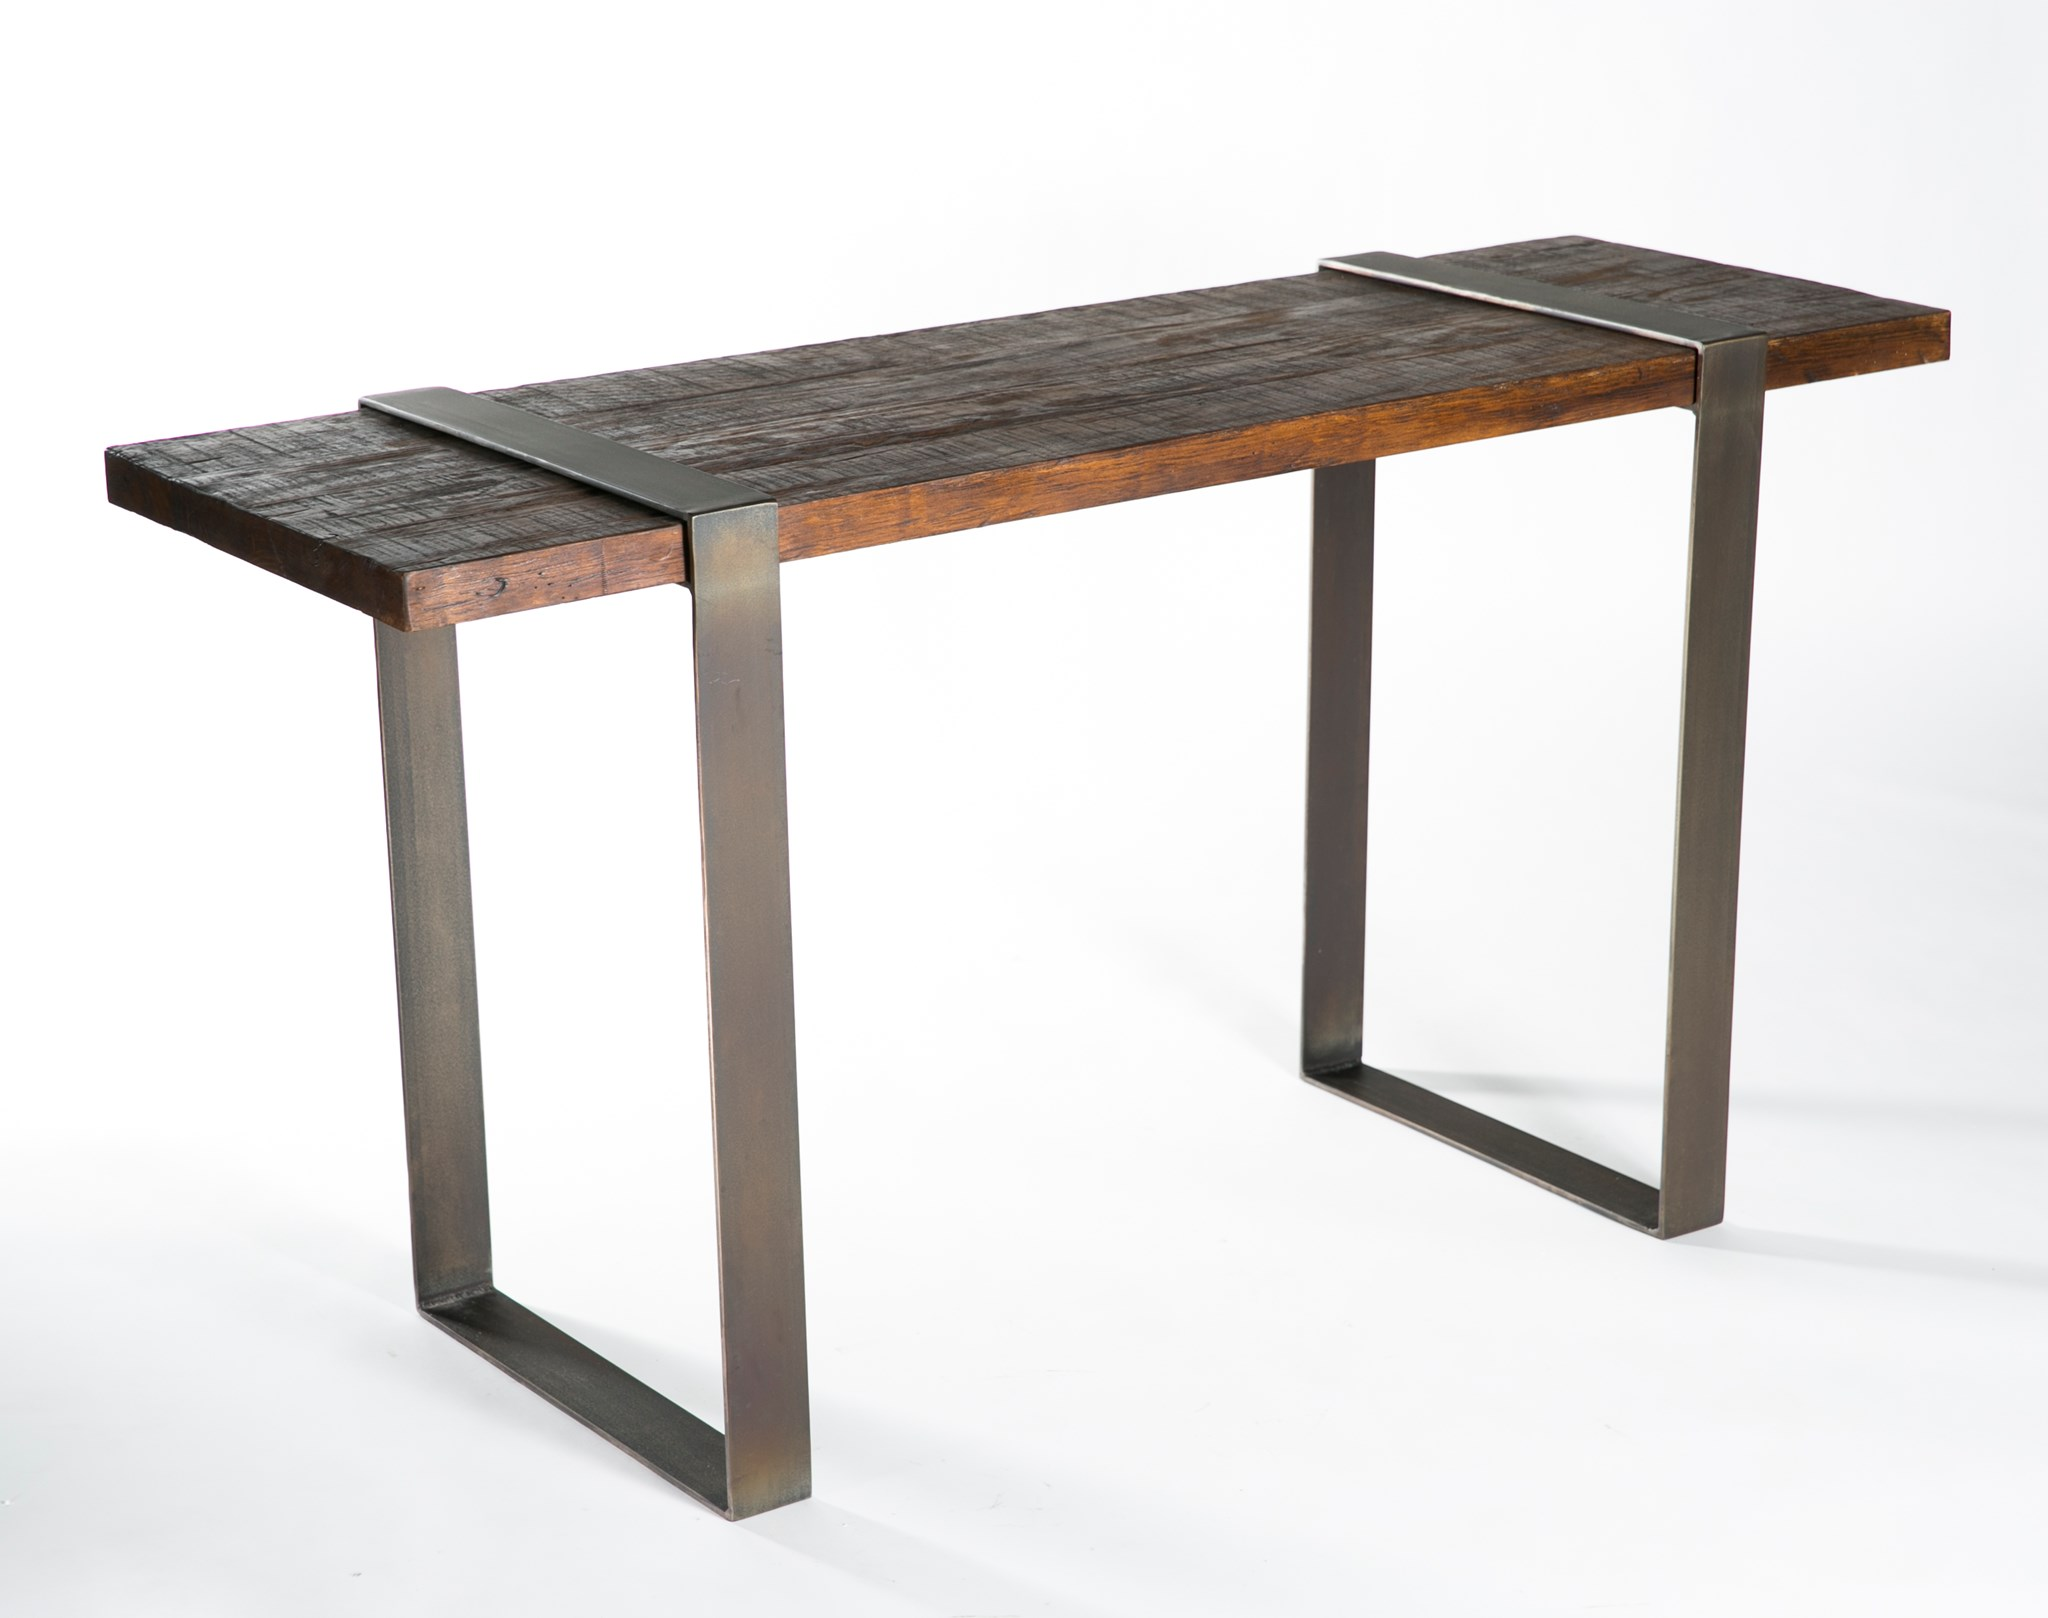 Jackson Console Table With Steel Strap Legs And Reclaimed Wood Top